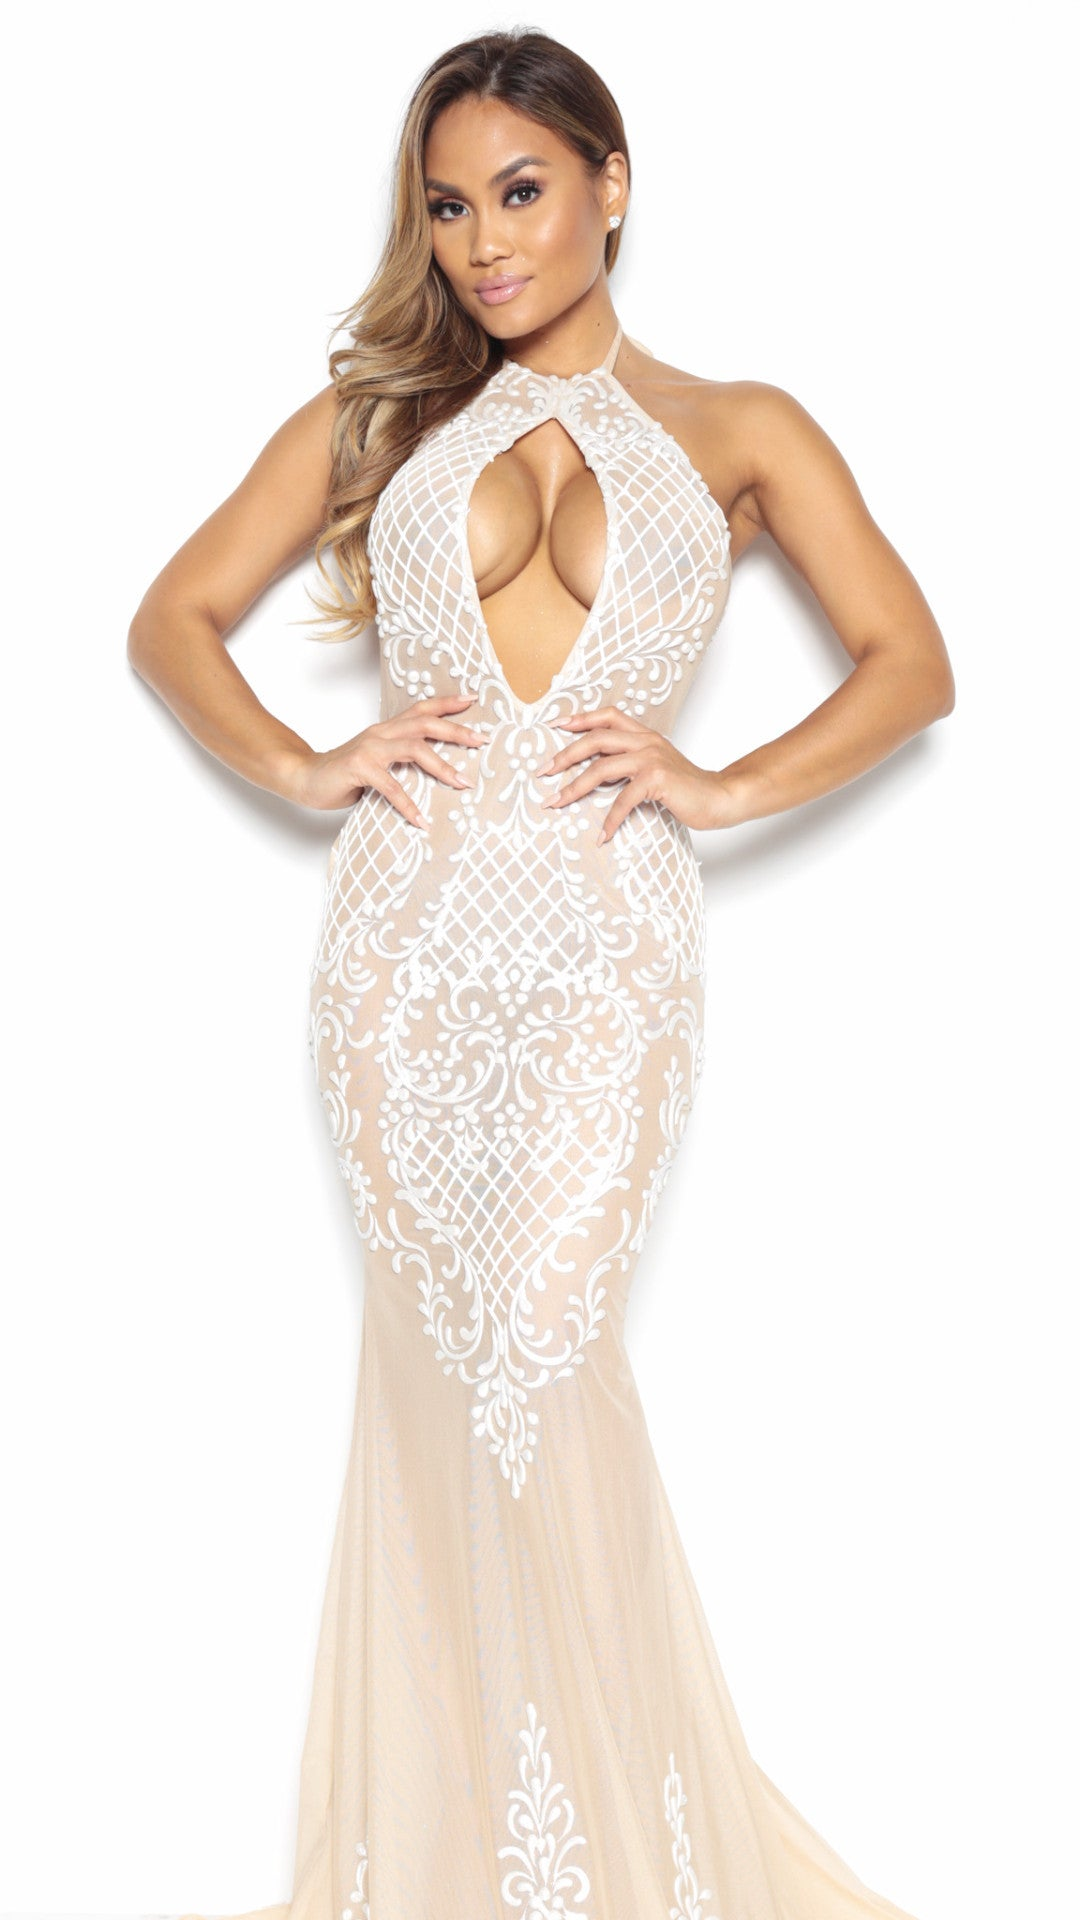 ROSE NUDE GOWN WITH WHITE